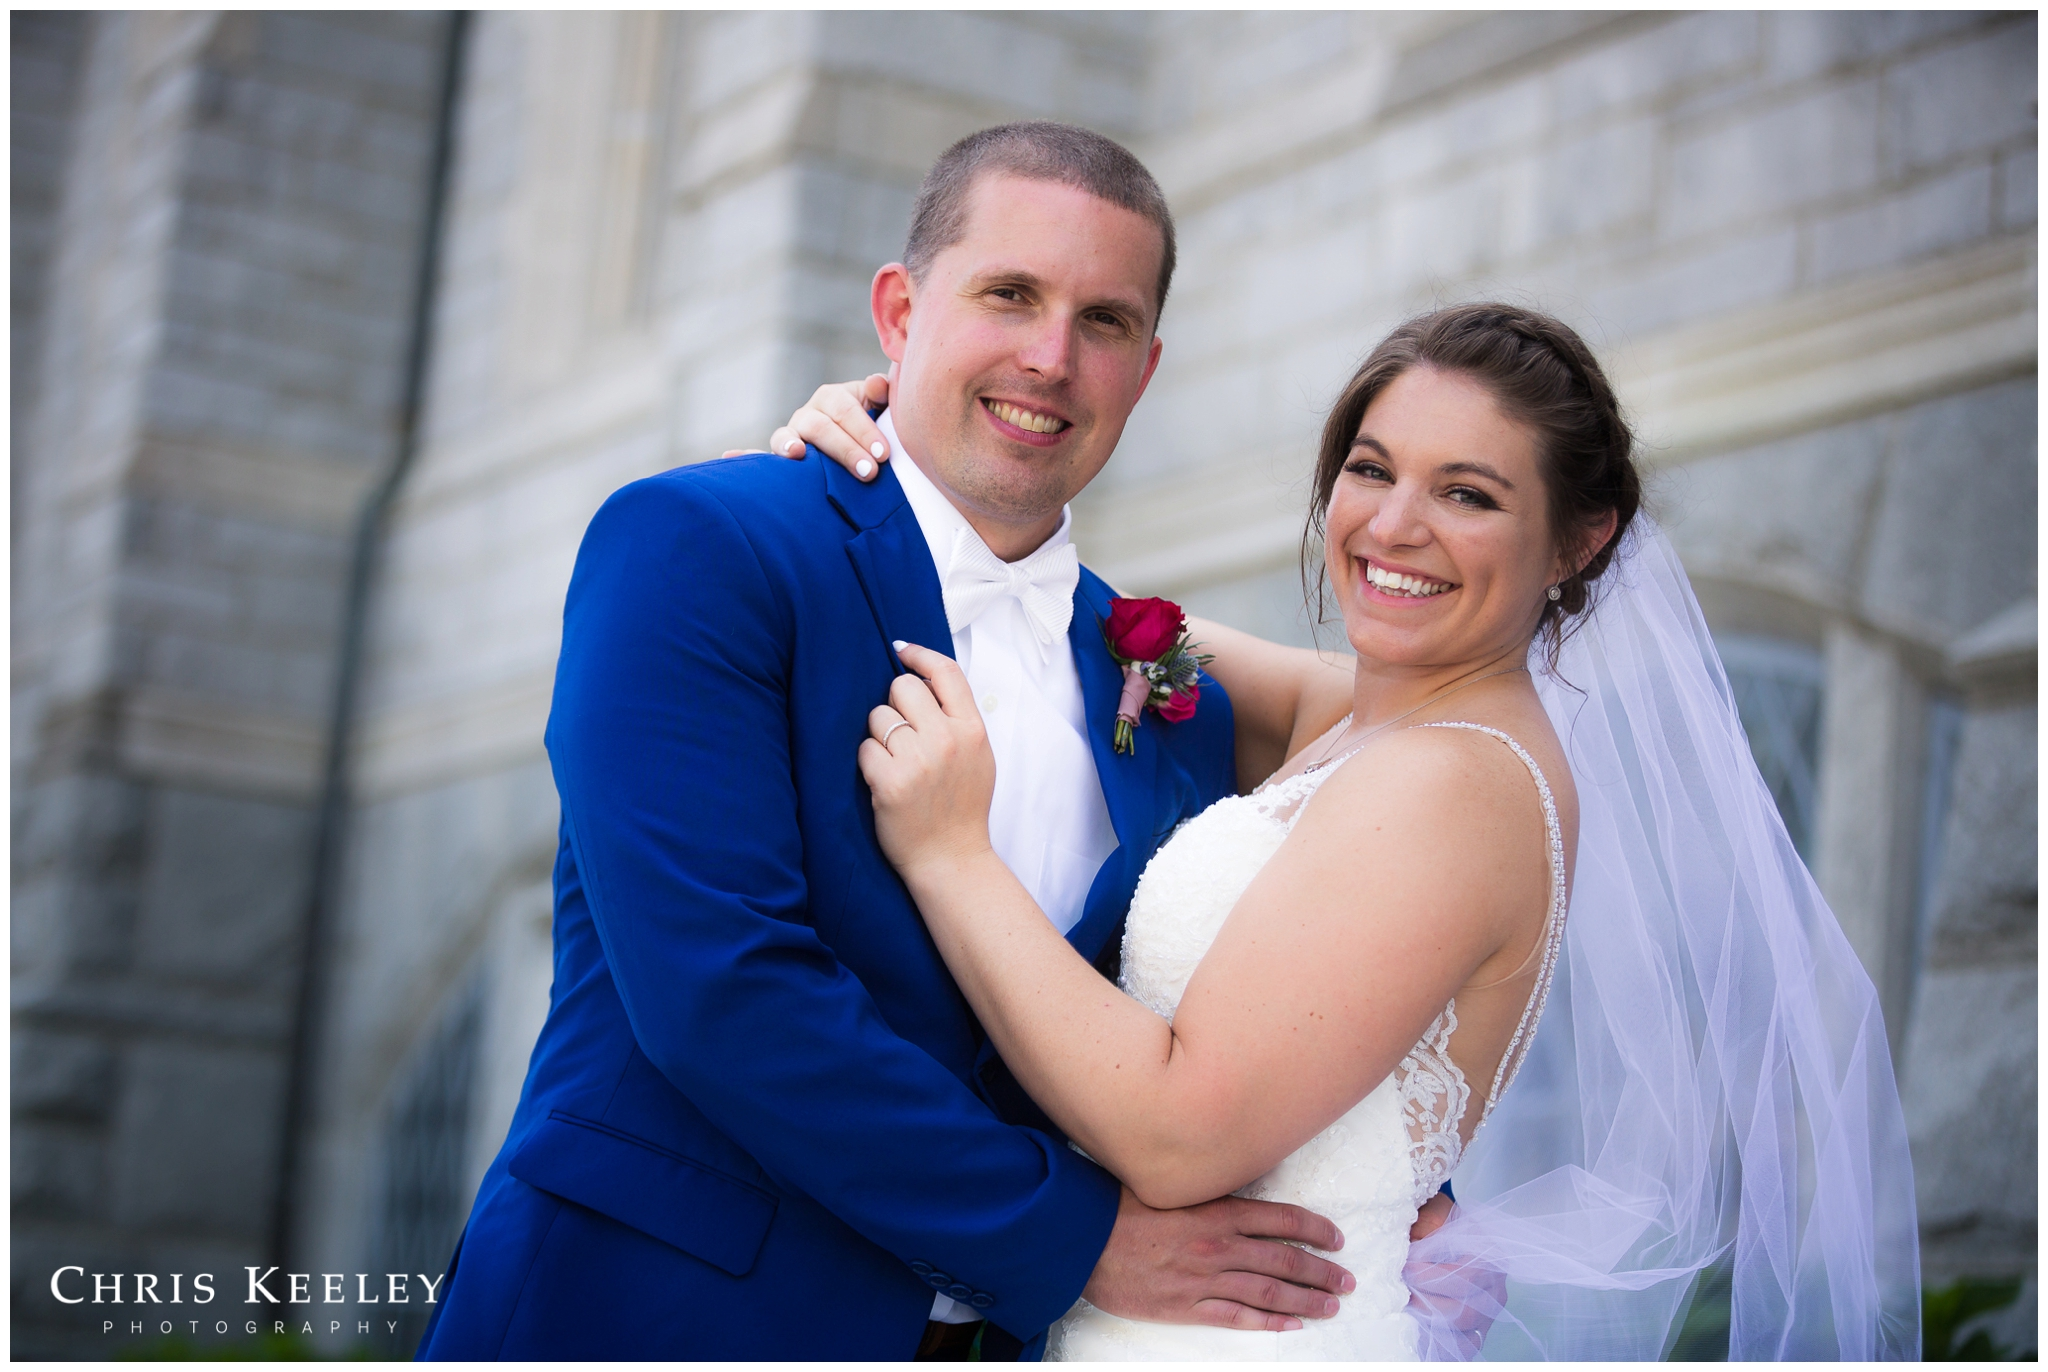 bride-and-groom-smiling-outside-church.jpg